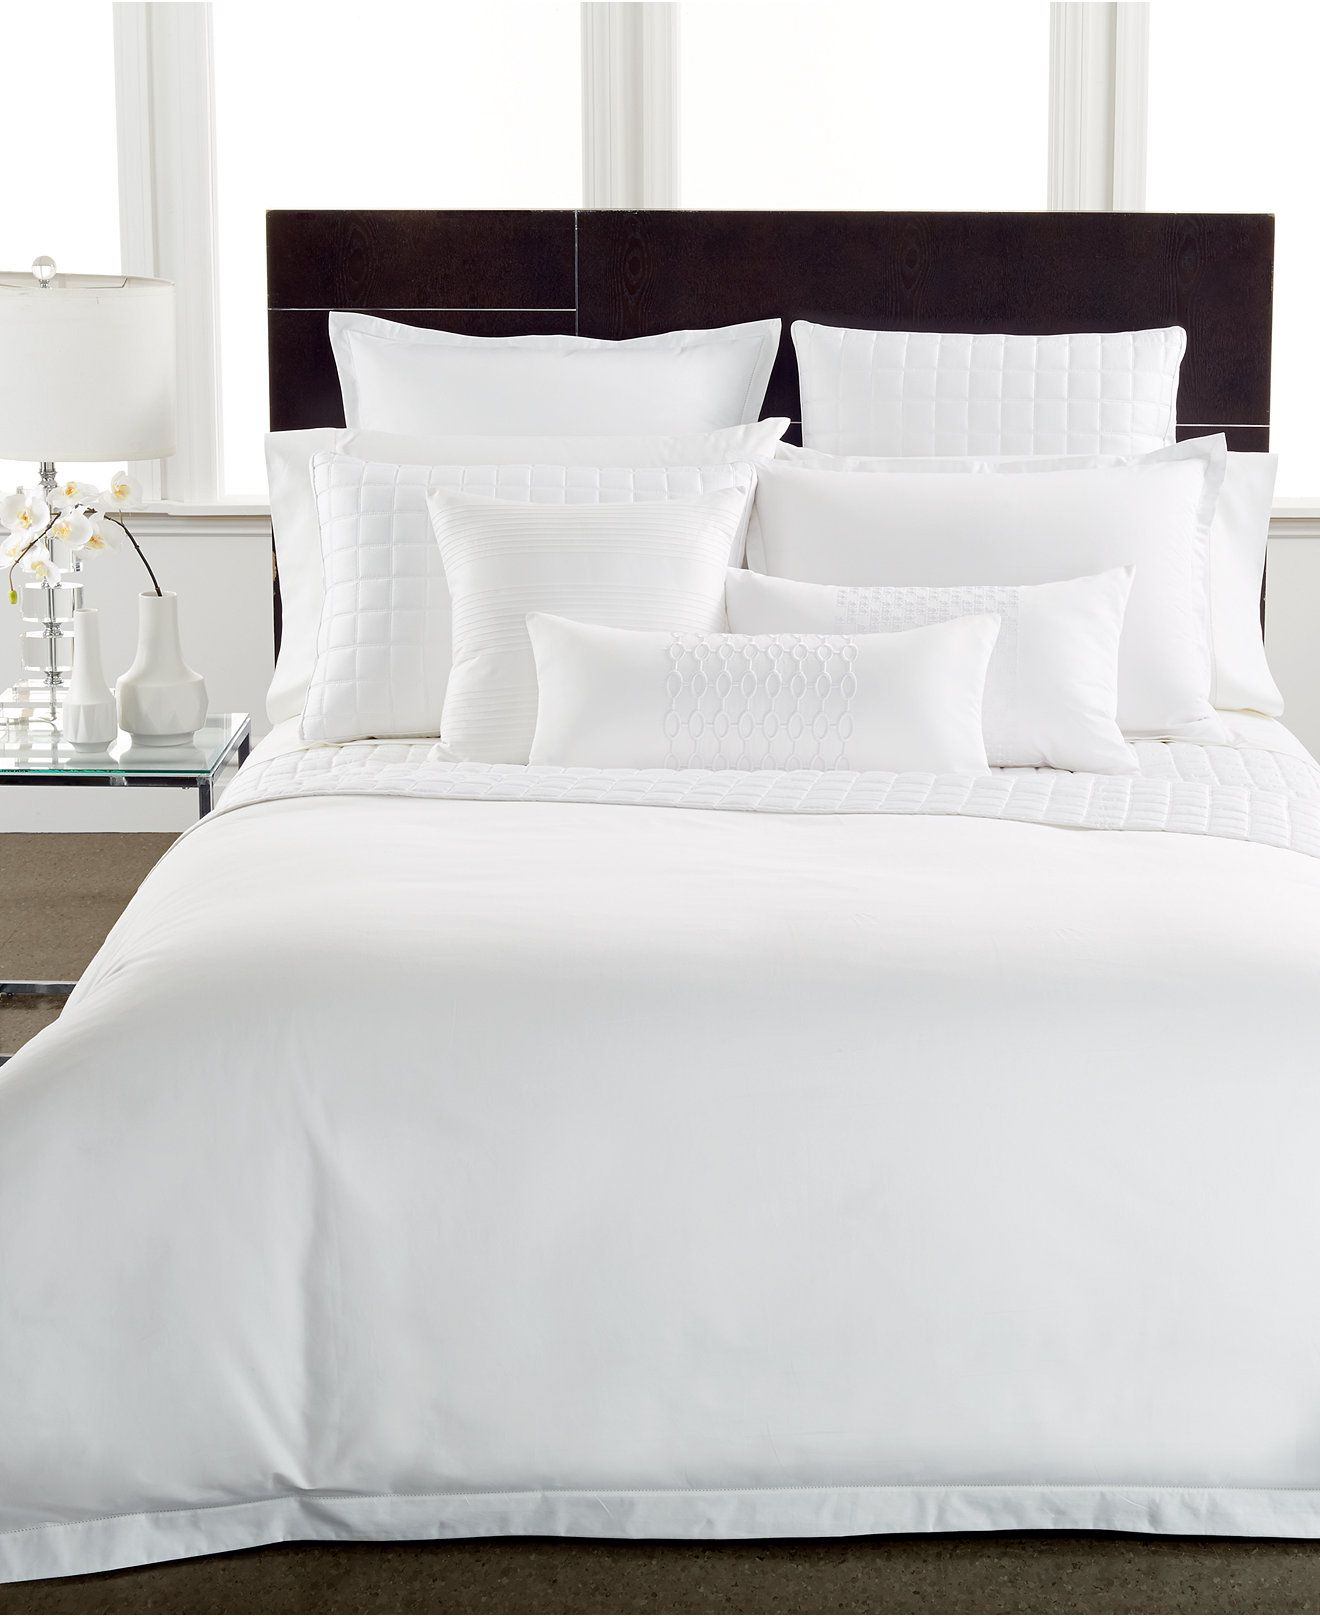 Hotel Collection 600 Thread Count Egyptian Cotton Bedding